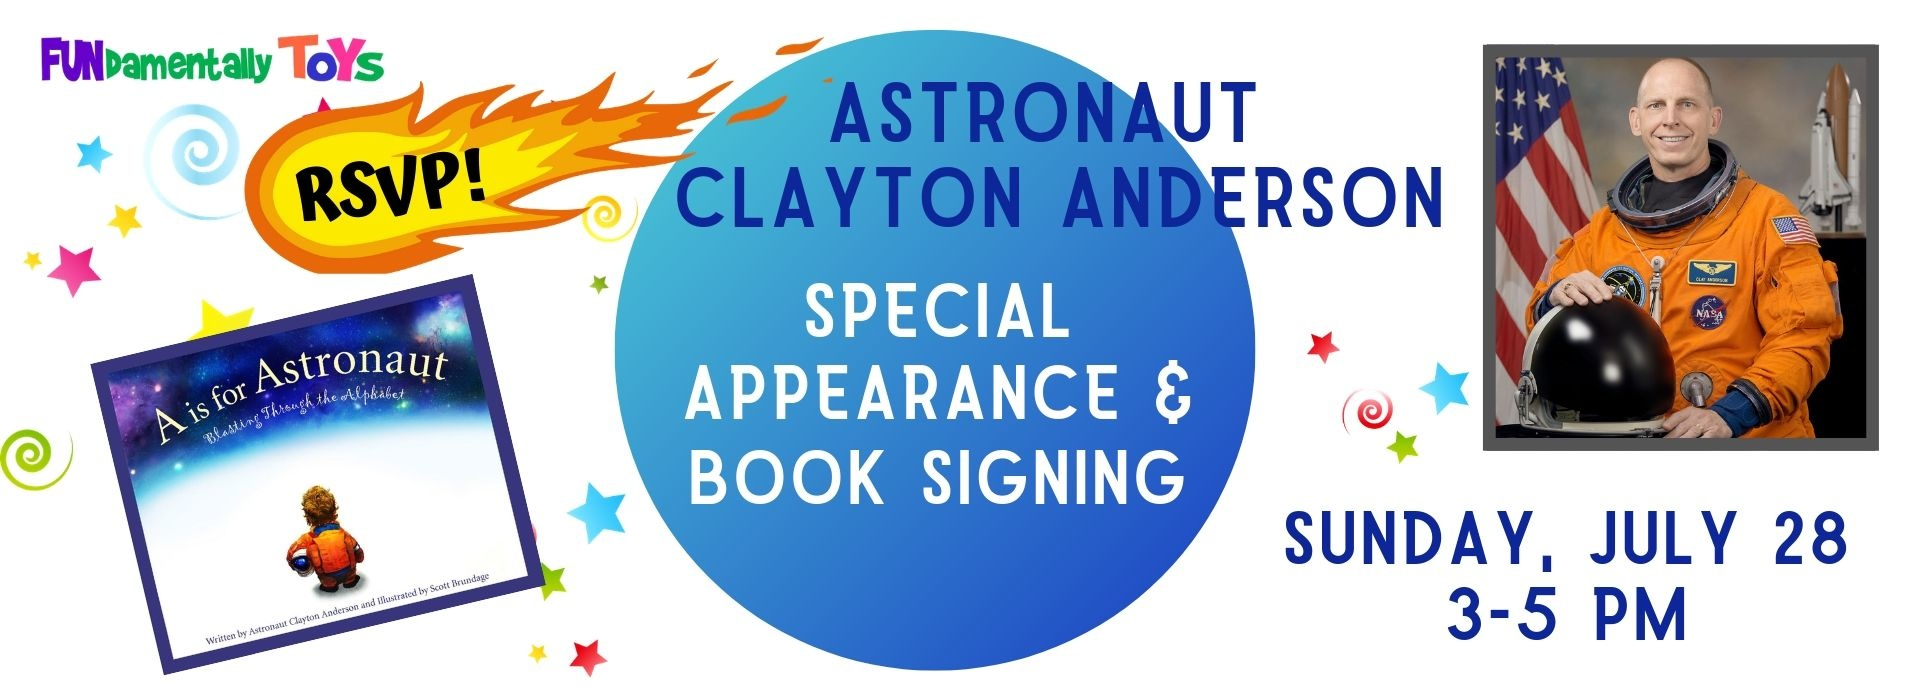 Clayton Anderson Special Appearance